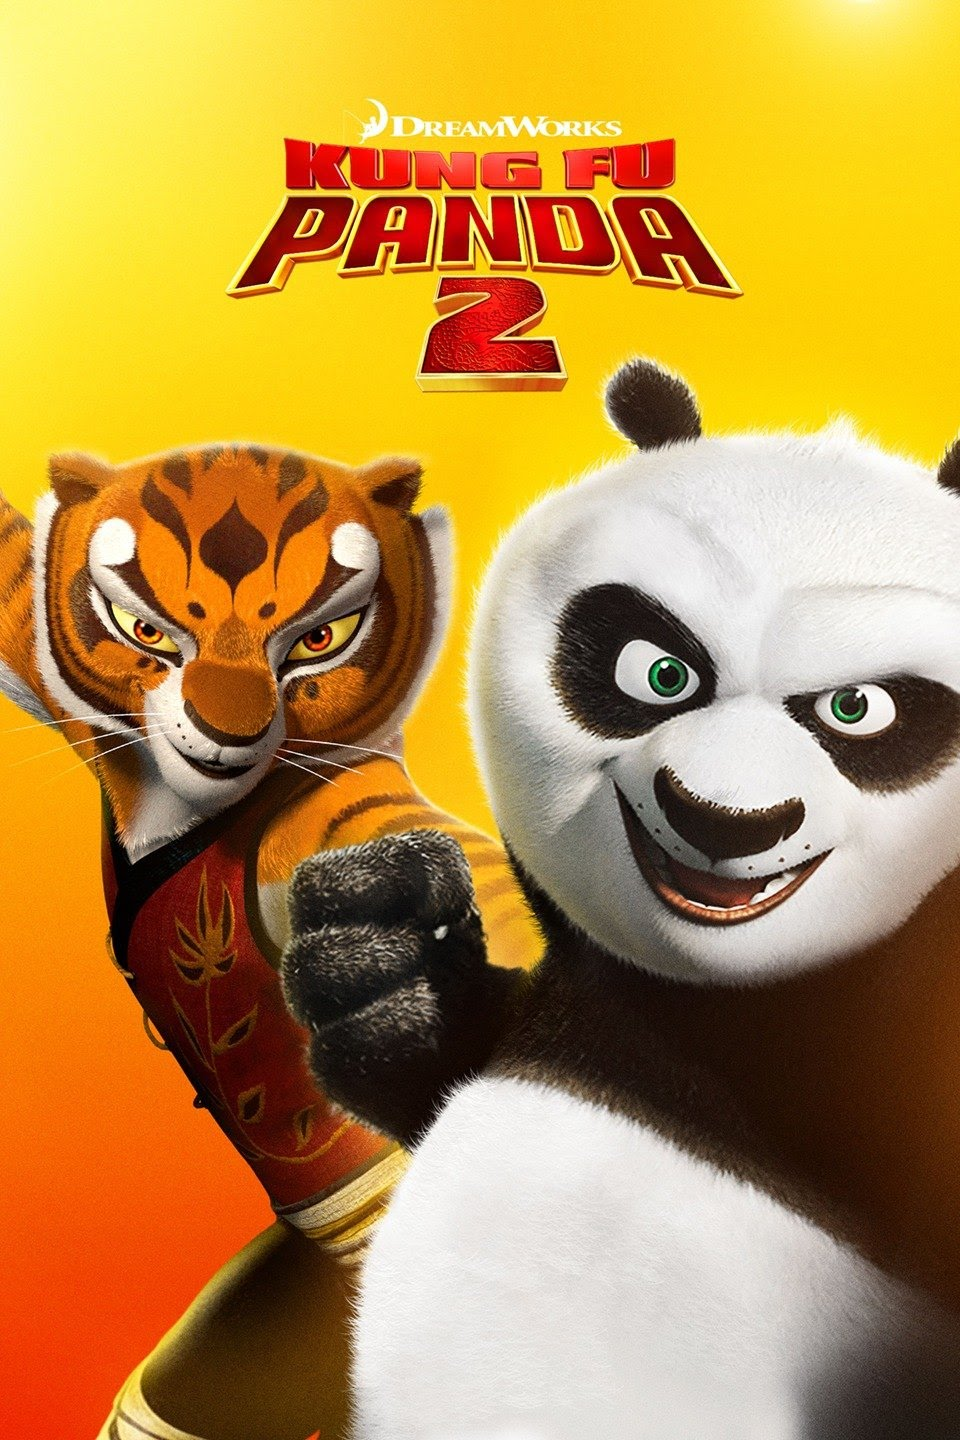 Kung Fu Panda 2 (2011) Full Movie Download In Hindi Dubbed